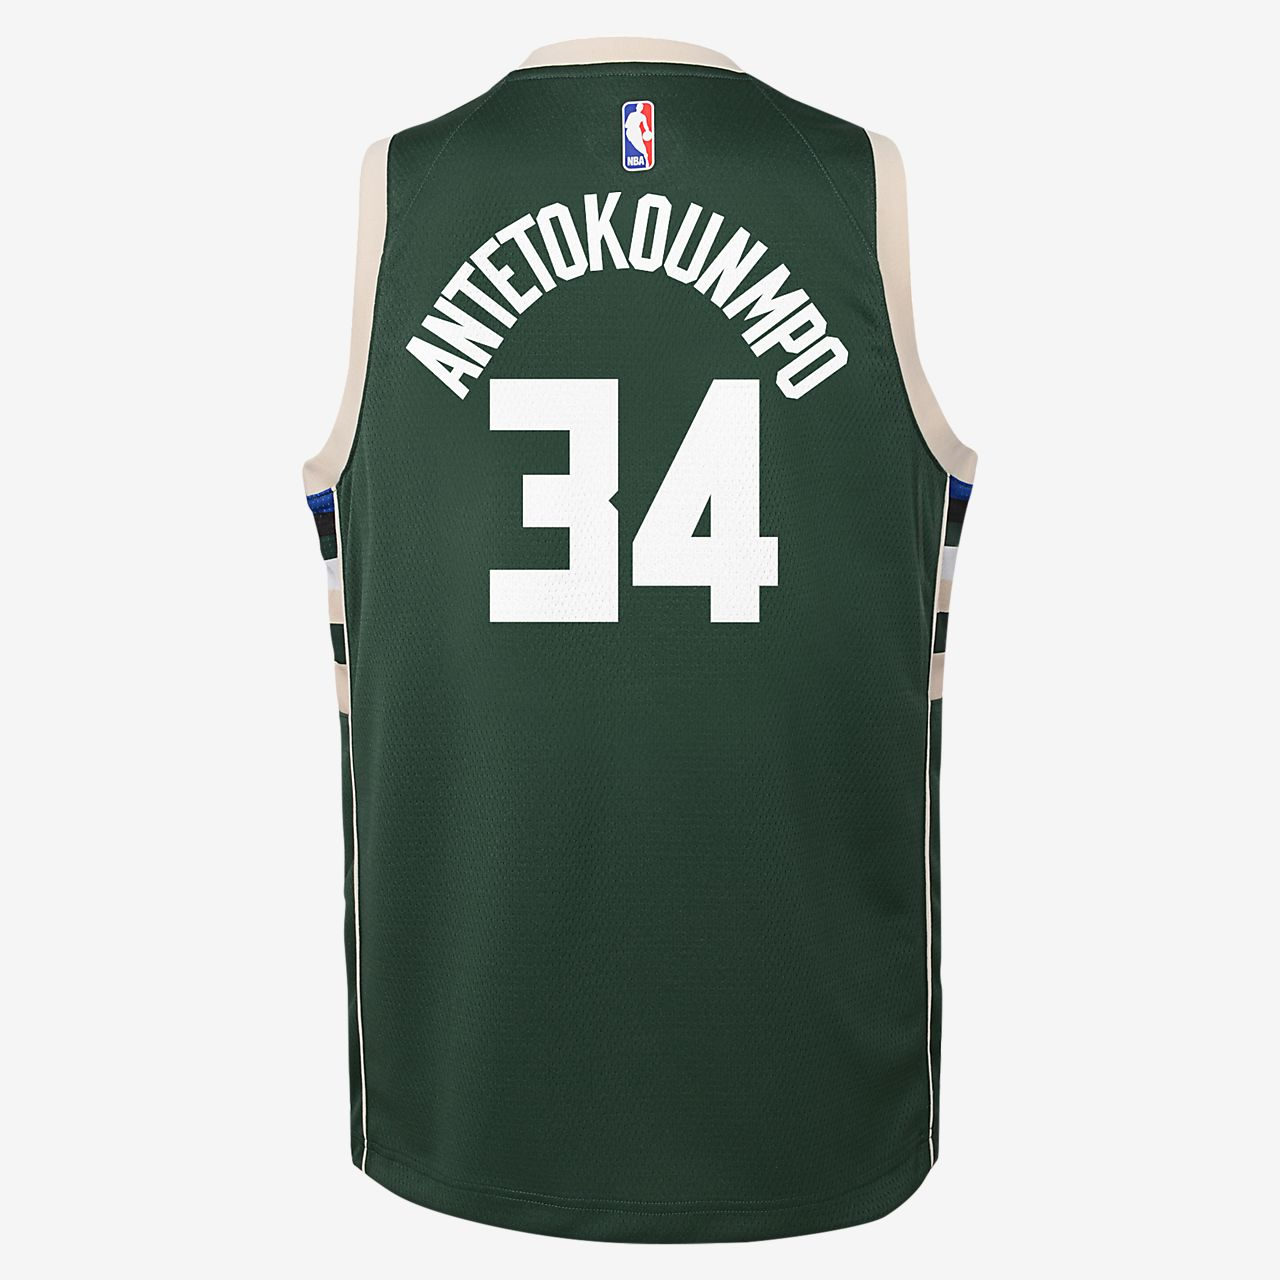 489a8f8cdf5 ... Giannis Antetokounmpo Milwaukee Bucks Nike Icon Edition Swingman Big  Kids' NBA Jersey